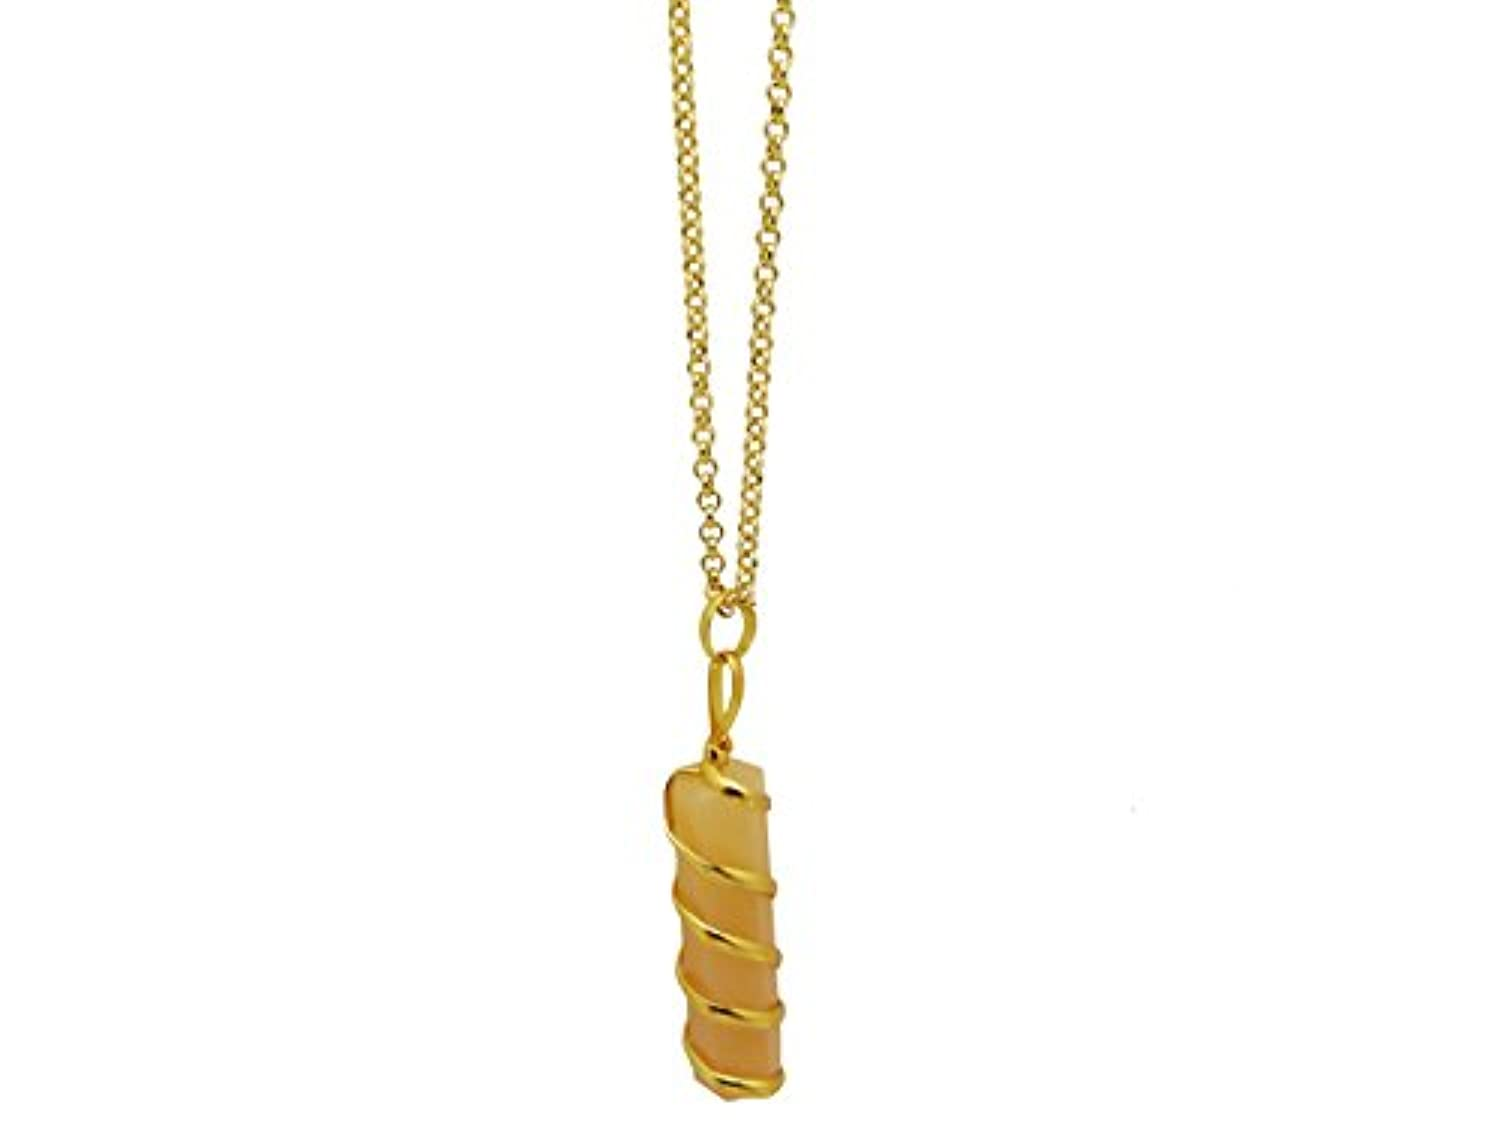 Crystal Point Pendants Beads Crystal Quartz Gold Wrapped Stone Charm for Necklace Jewelry Making - Yellow Aventurine